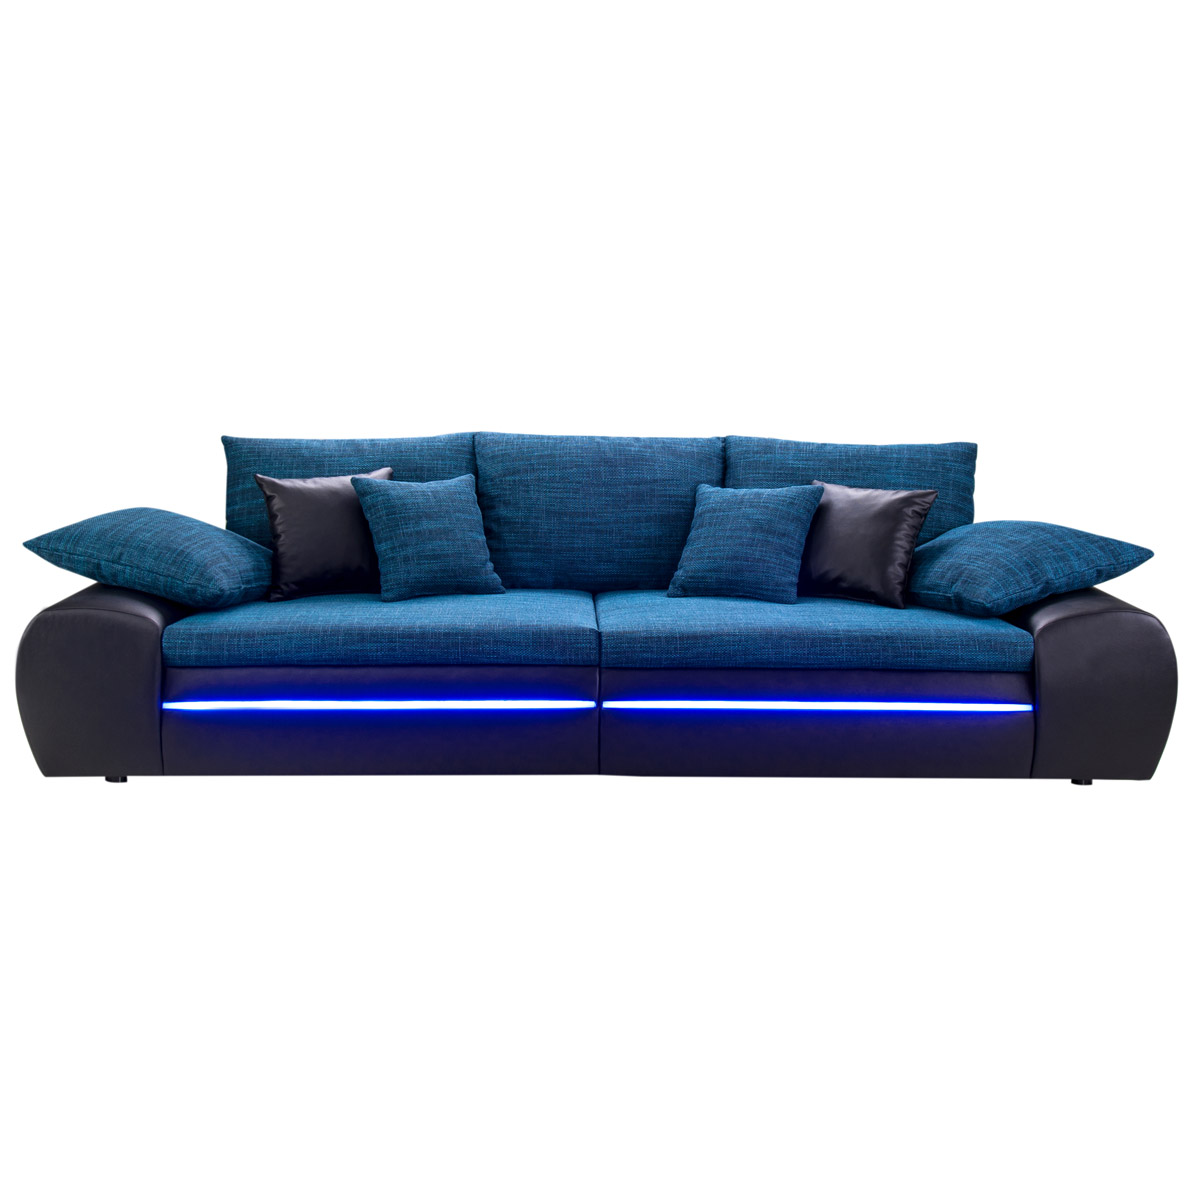 Big sofa schlaffunktion big sofa xxl mit schlaffunktion carprola for big sofa xxl mit Big sofa xxl wohnlandschaft